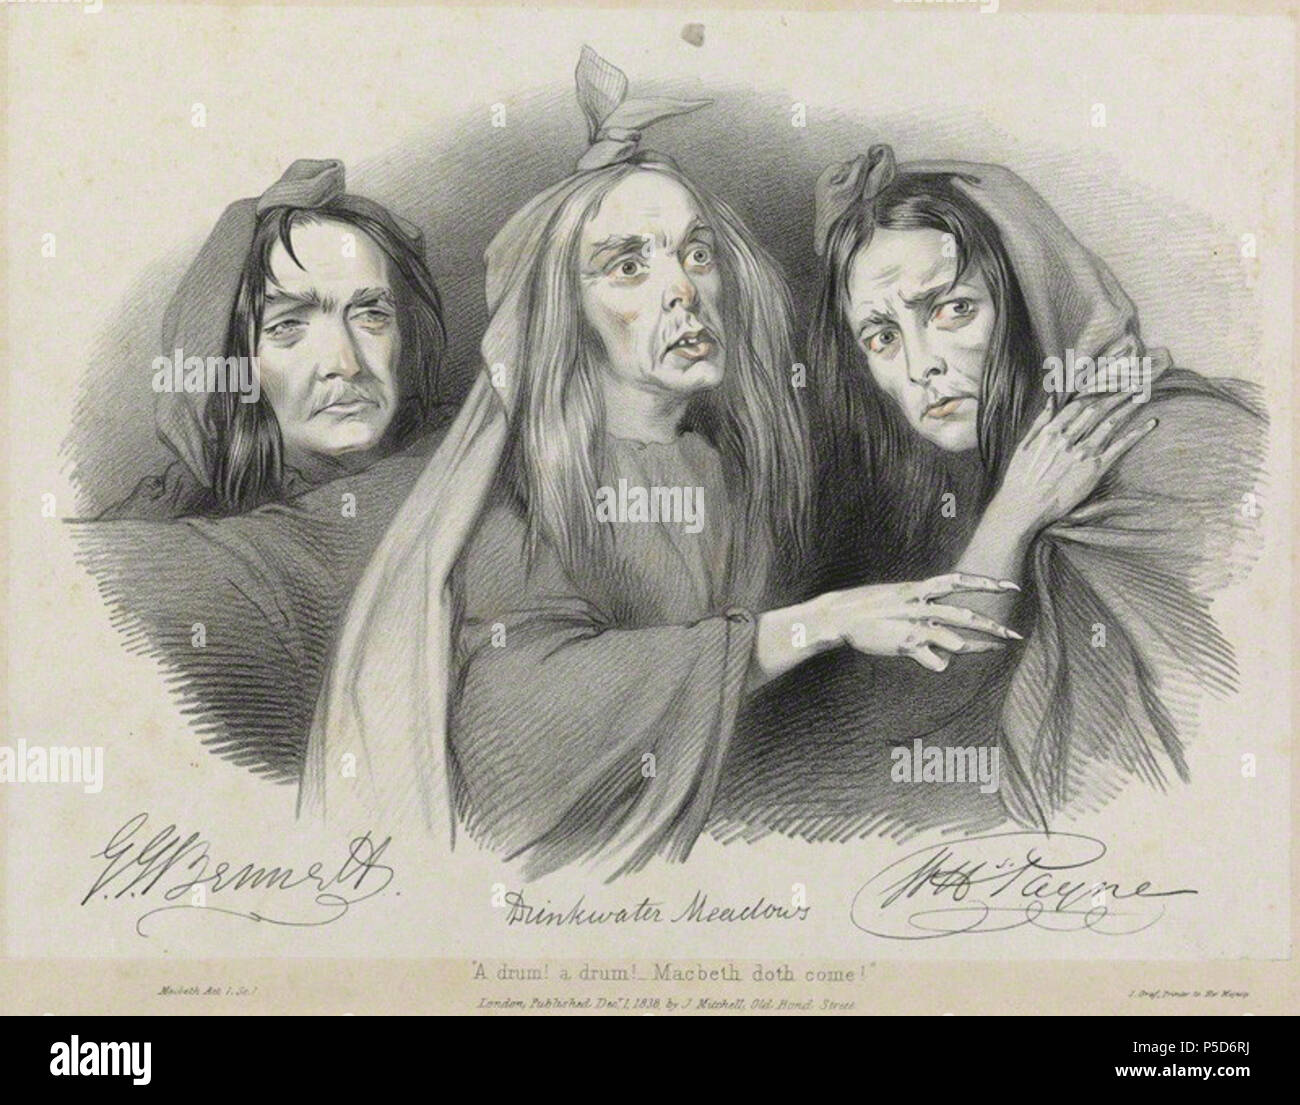 by Richard James Lane, printed by  JÈrÈmie Graf, published by  John Mitchell, hand-coloured lithograph, published 1 December 1838 480 Drinkwater Meadows; John Howard Payne; George John Bennett as the witches in 'Macbeth' - Stock Image